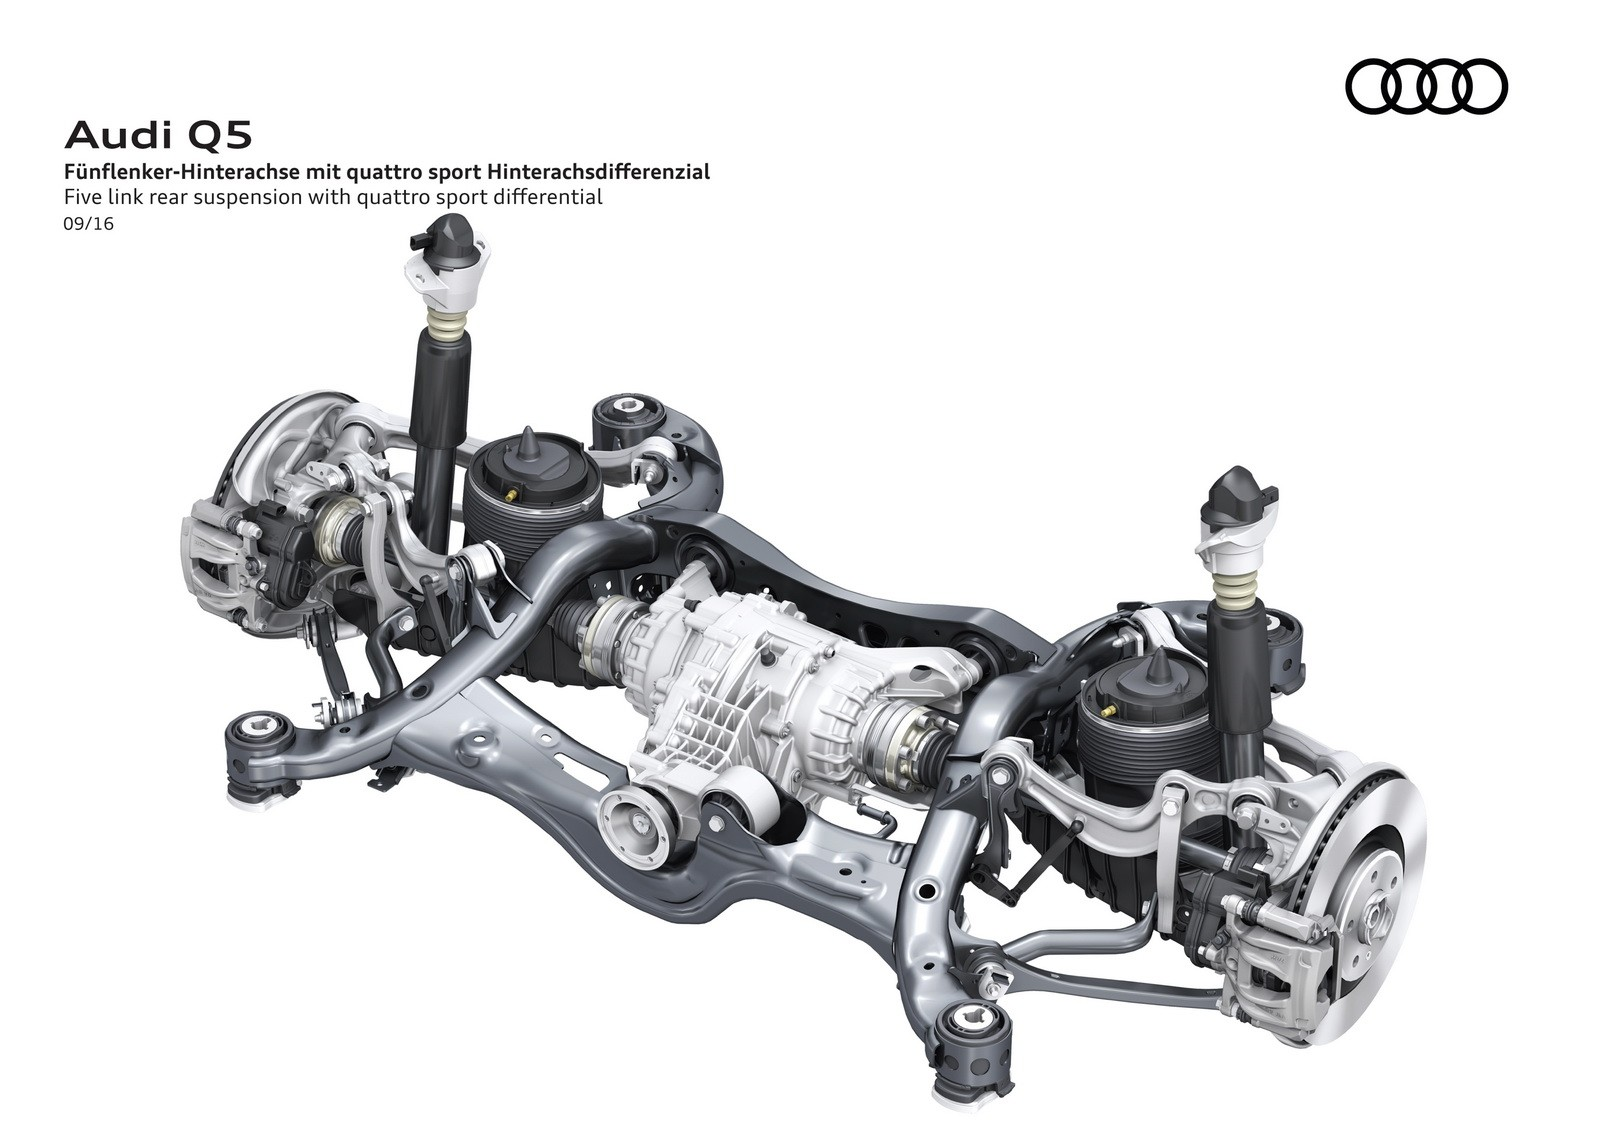 Audi Rs Q5 Powered By 2 9l Twin Turbo Porsche Engine